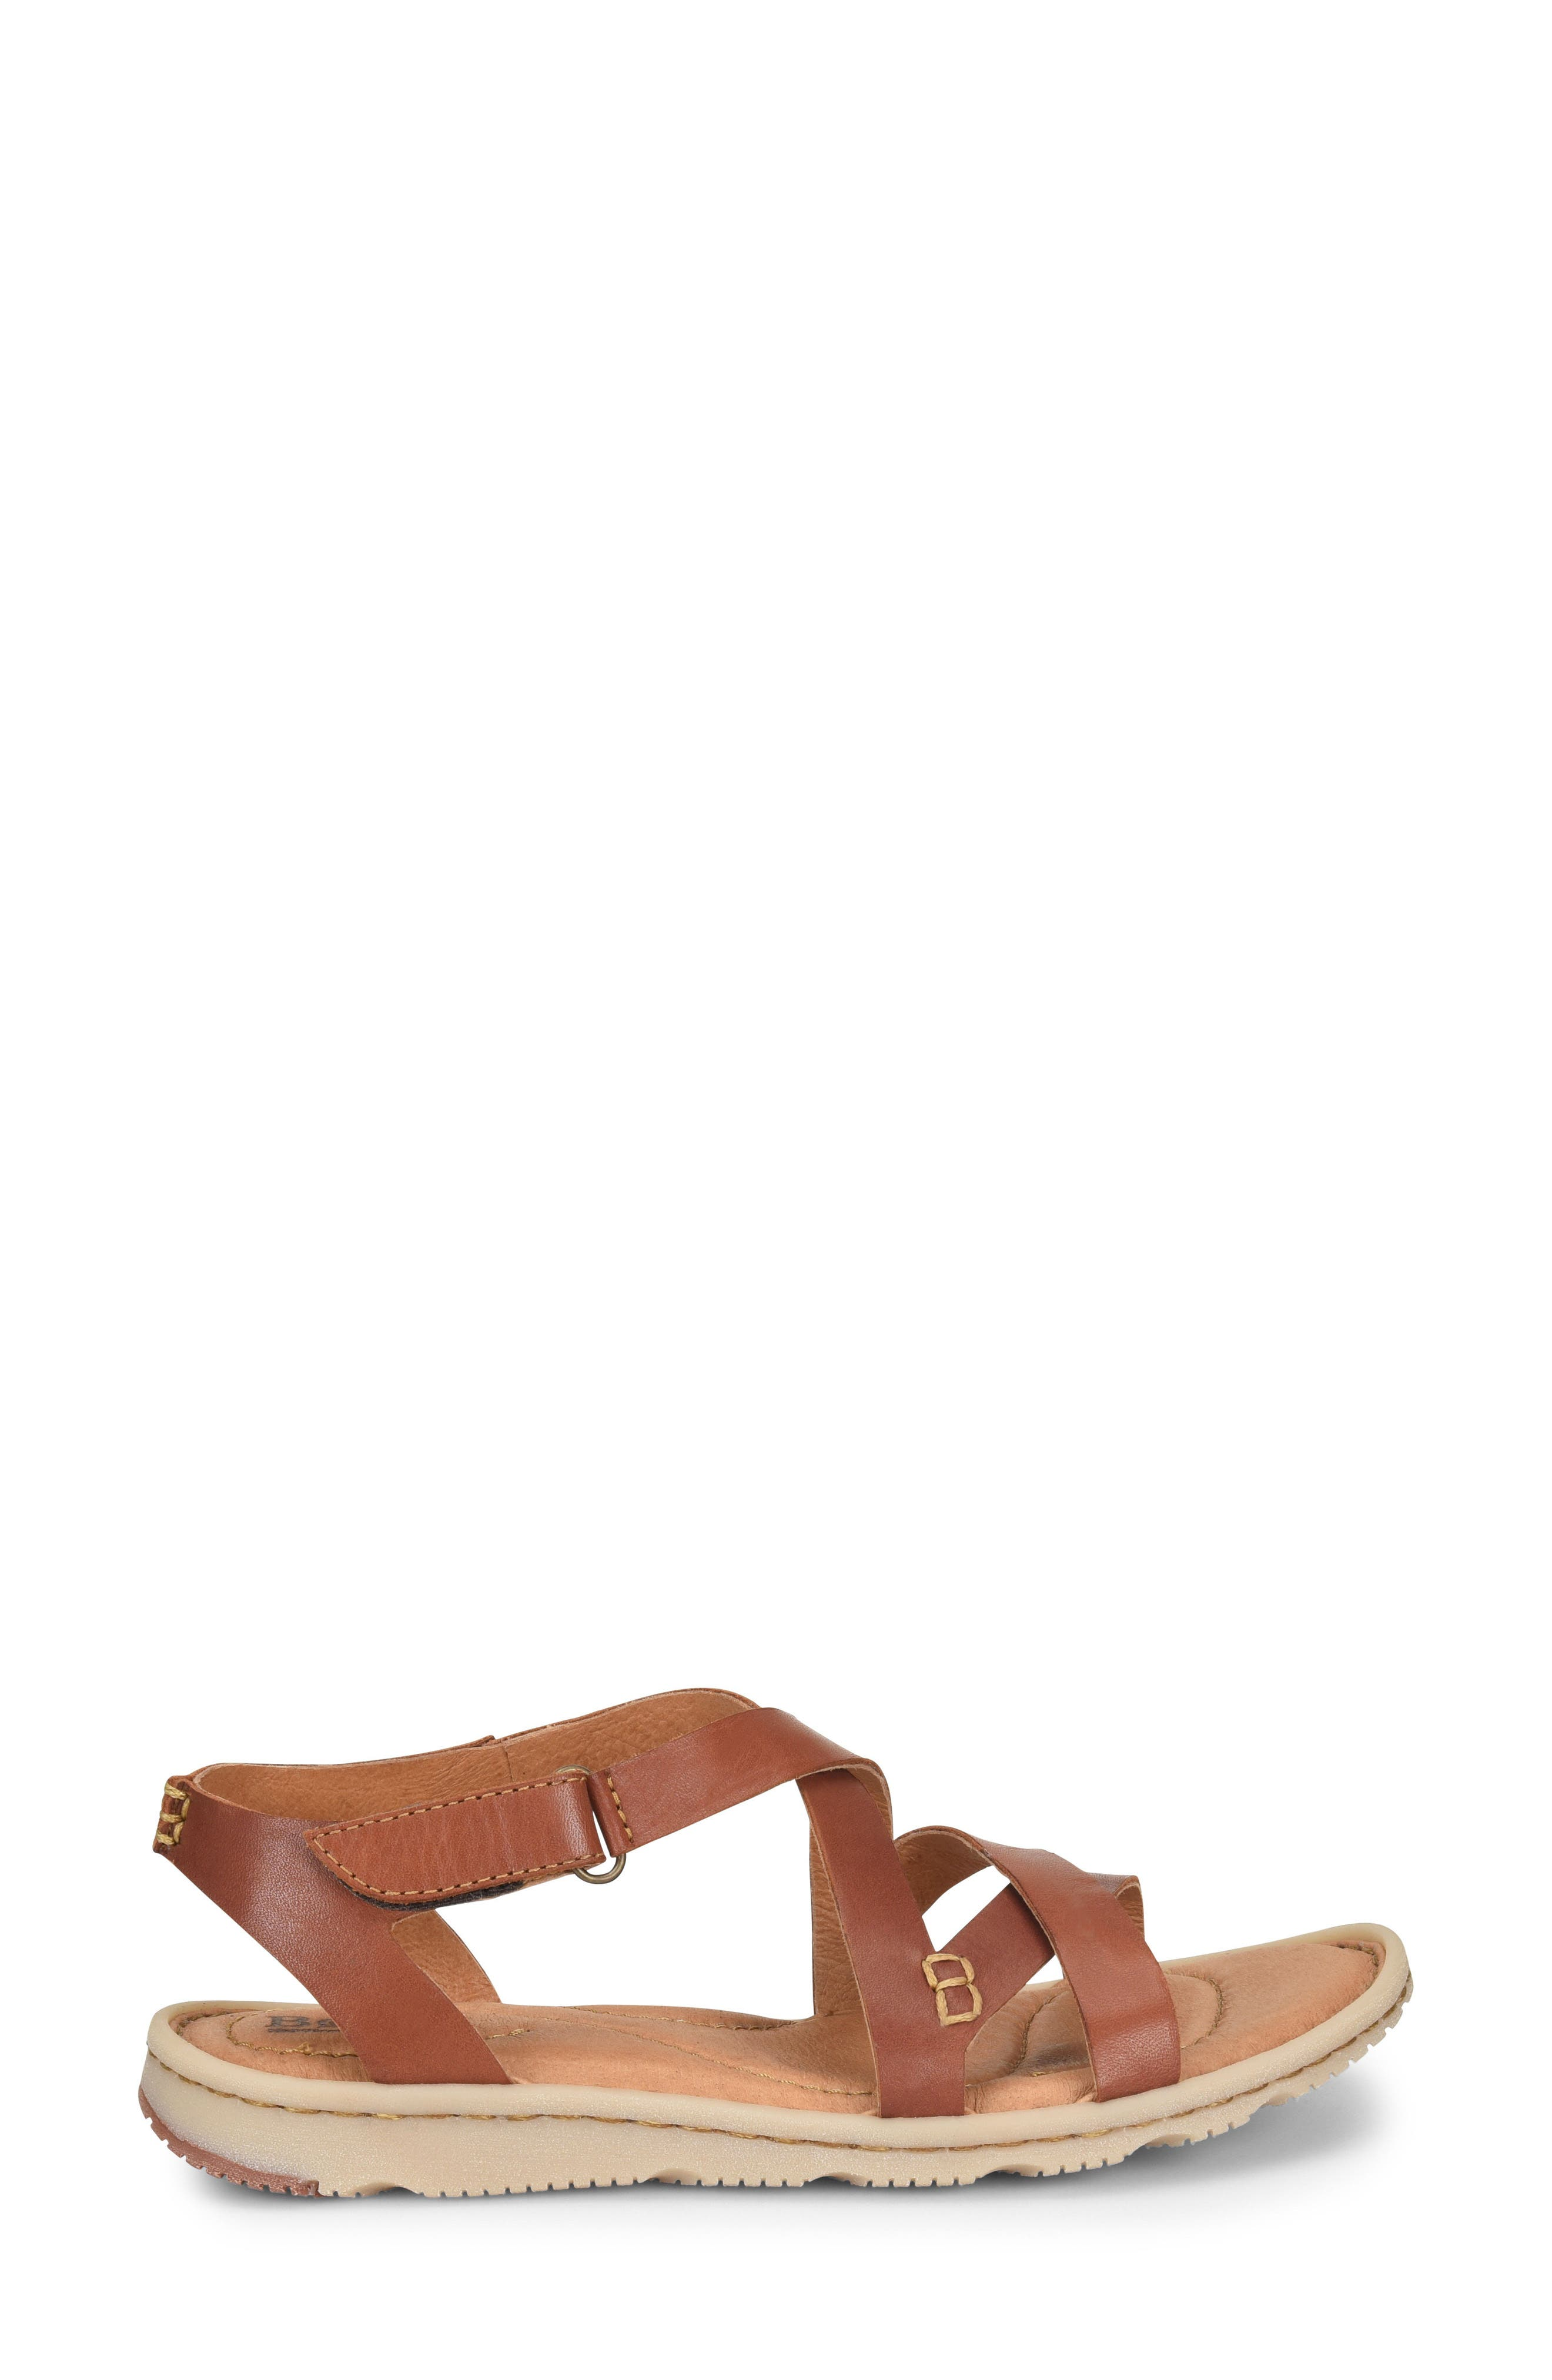 Trinidad Sandal,                             Alternate thumbnail 3, color,                             Brown Leather